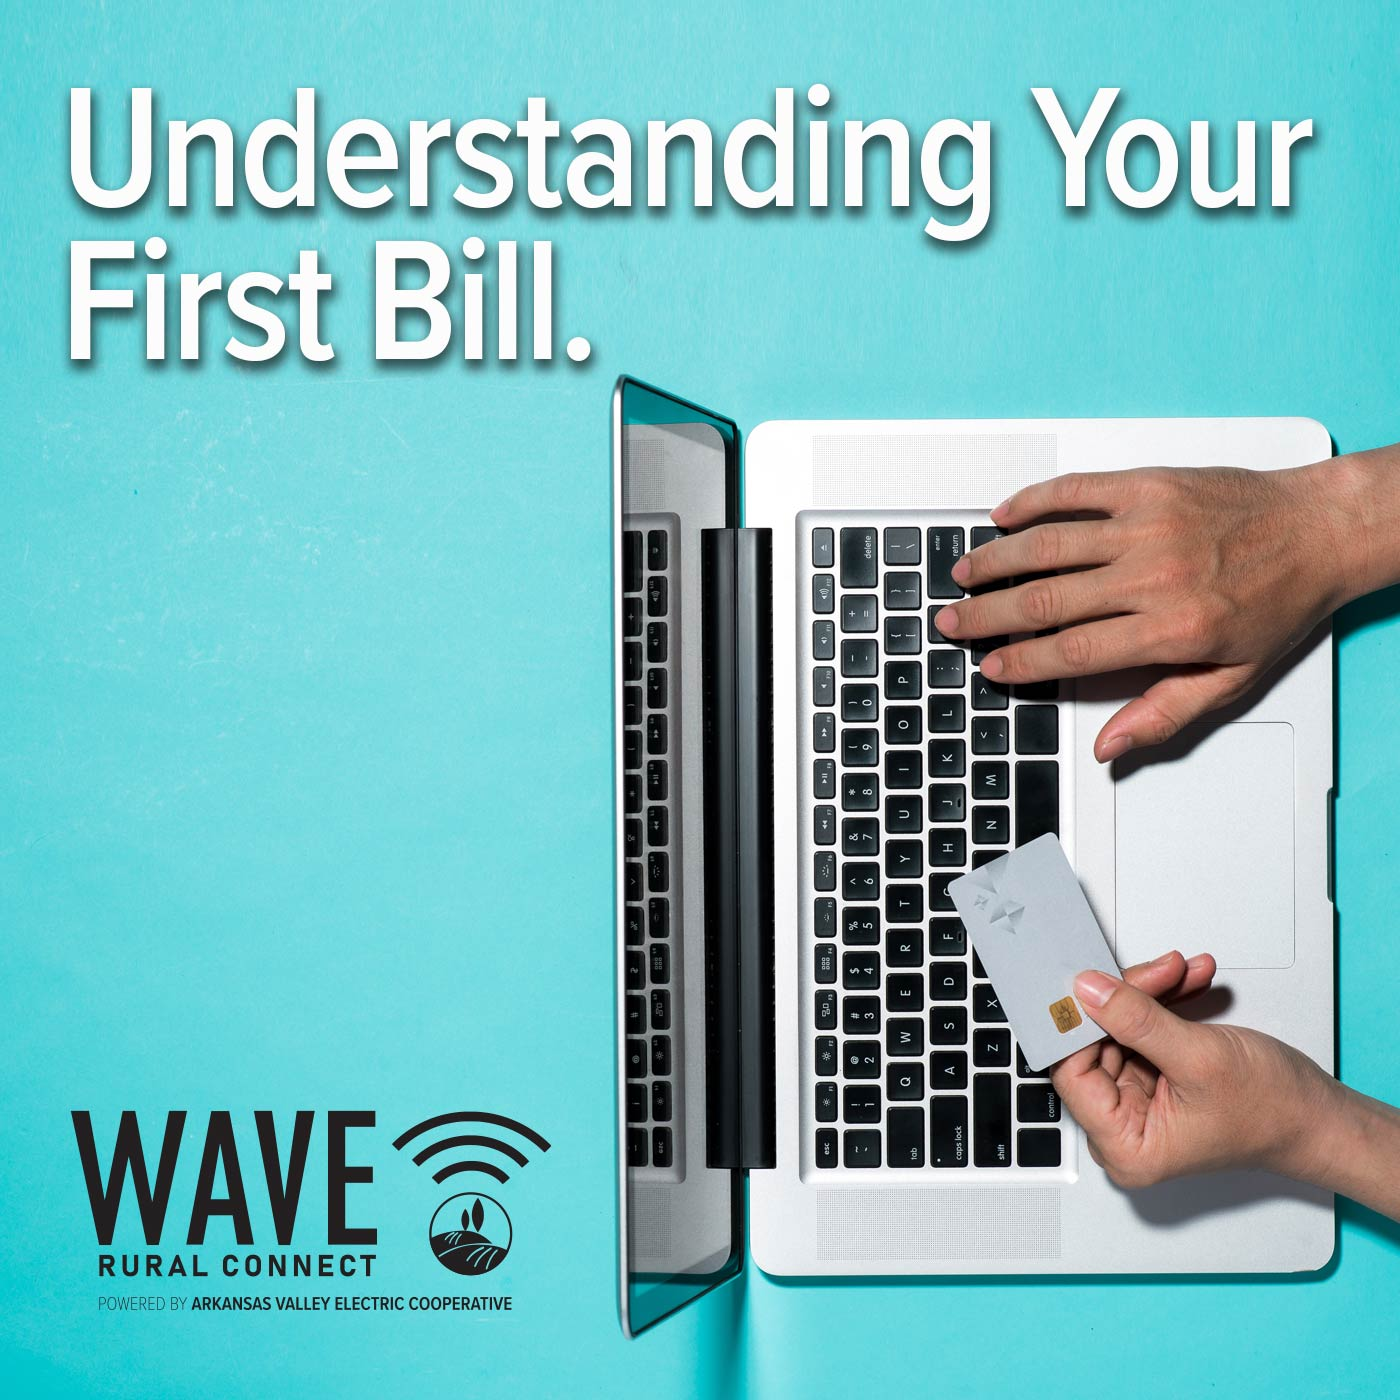 Understanding Your First Wave Rural Connect Bill